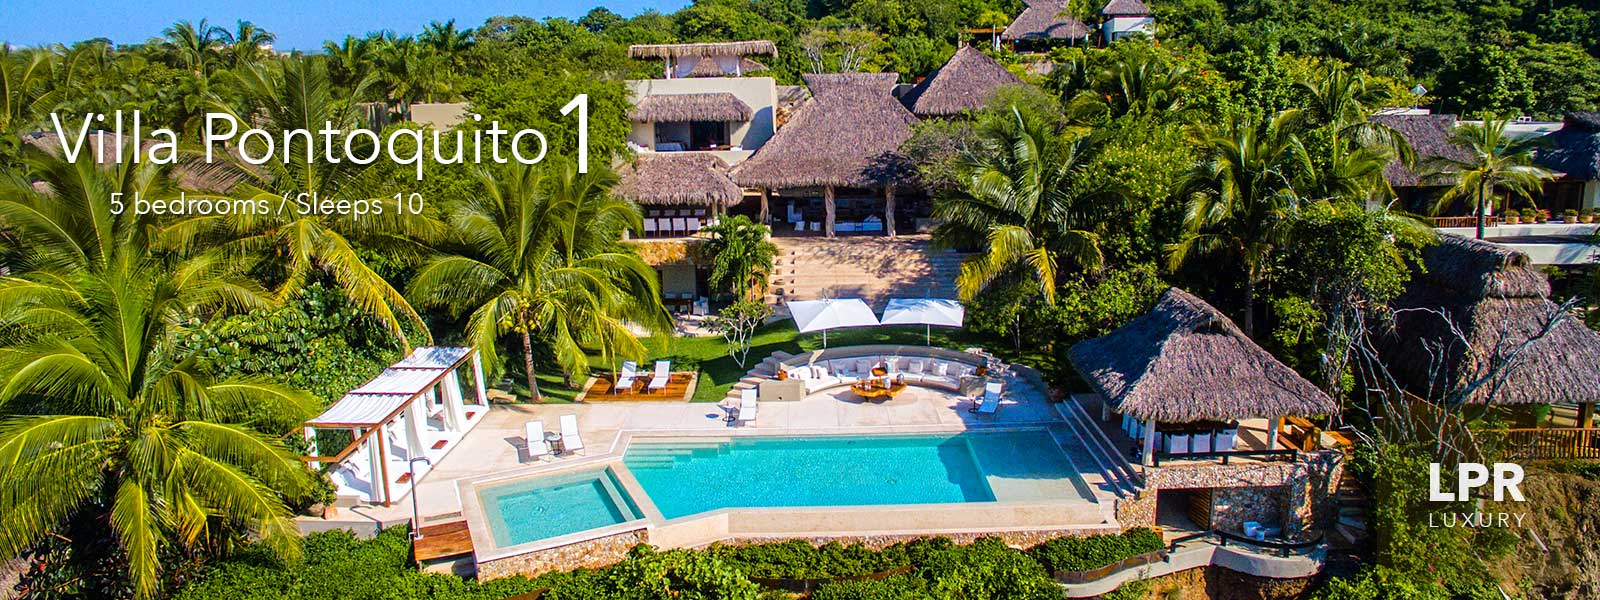 Villa Pontoquito 1 - Ultra Luxury Punta de Mita Real Estate - Beach Vacation Rental Villa For Sale in Mexico